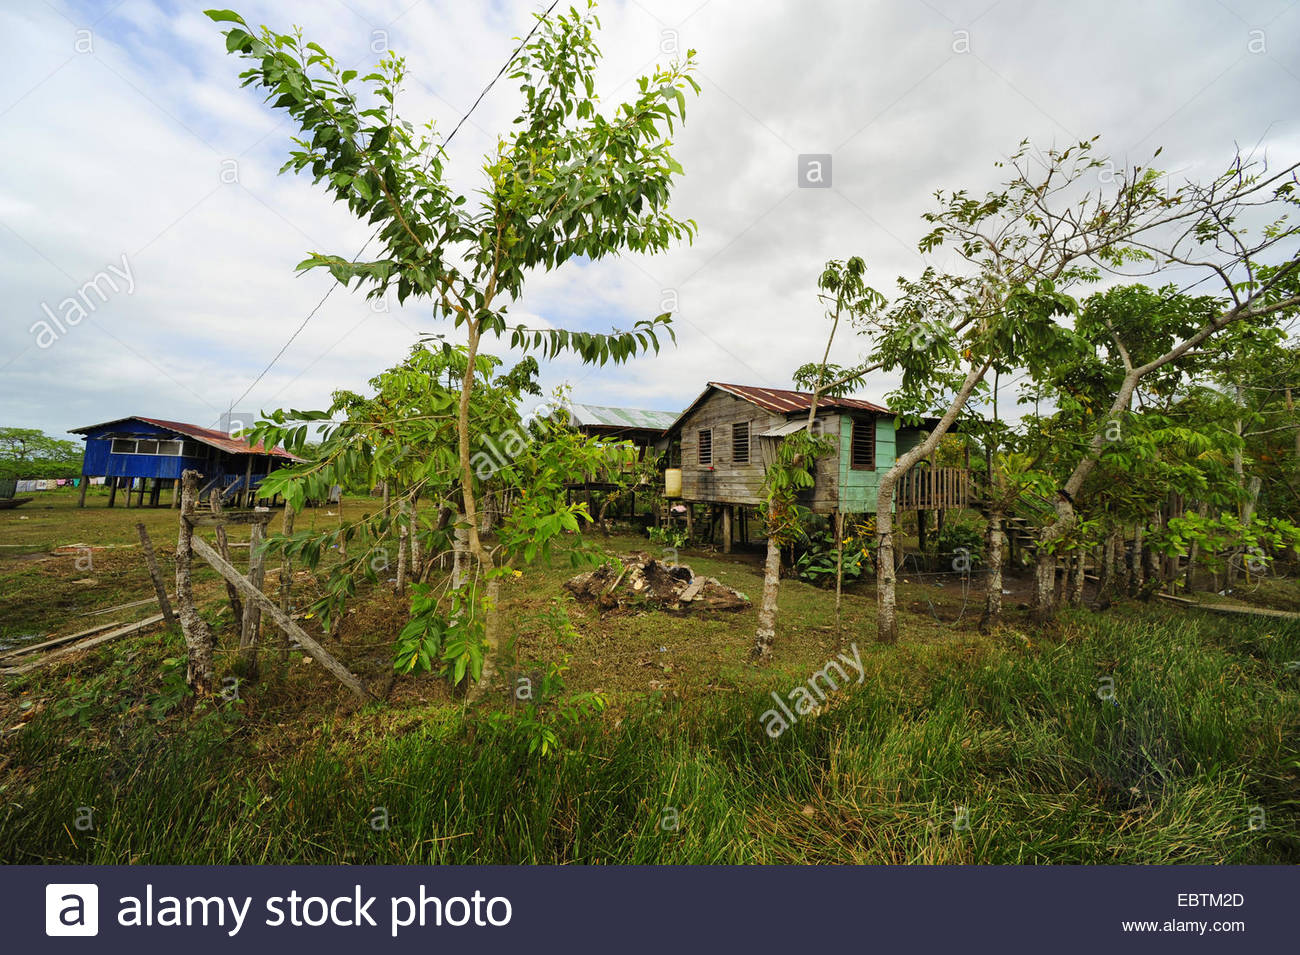 Mistruk La Mosquitia, Indian village with , Honduras, La Mosquitia, Las Marias, Gracias ...